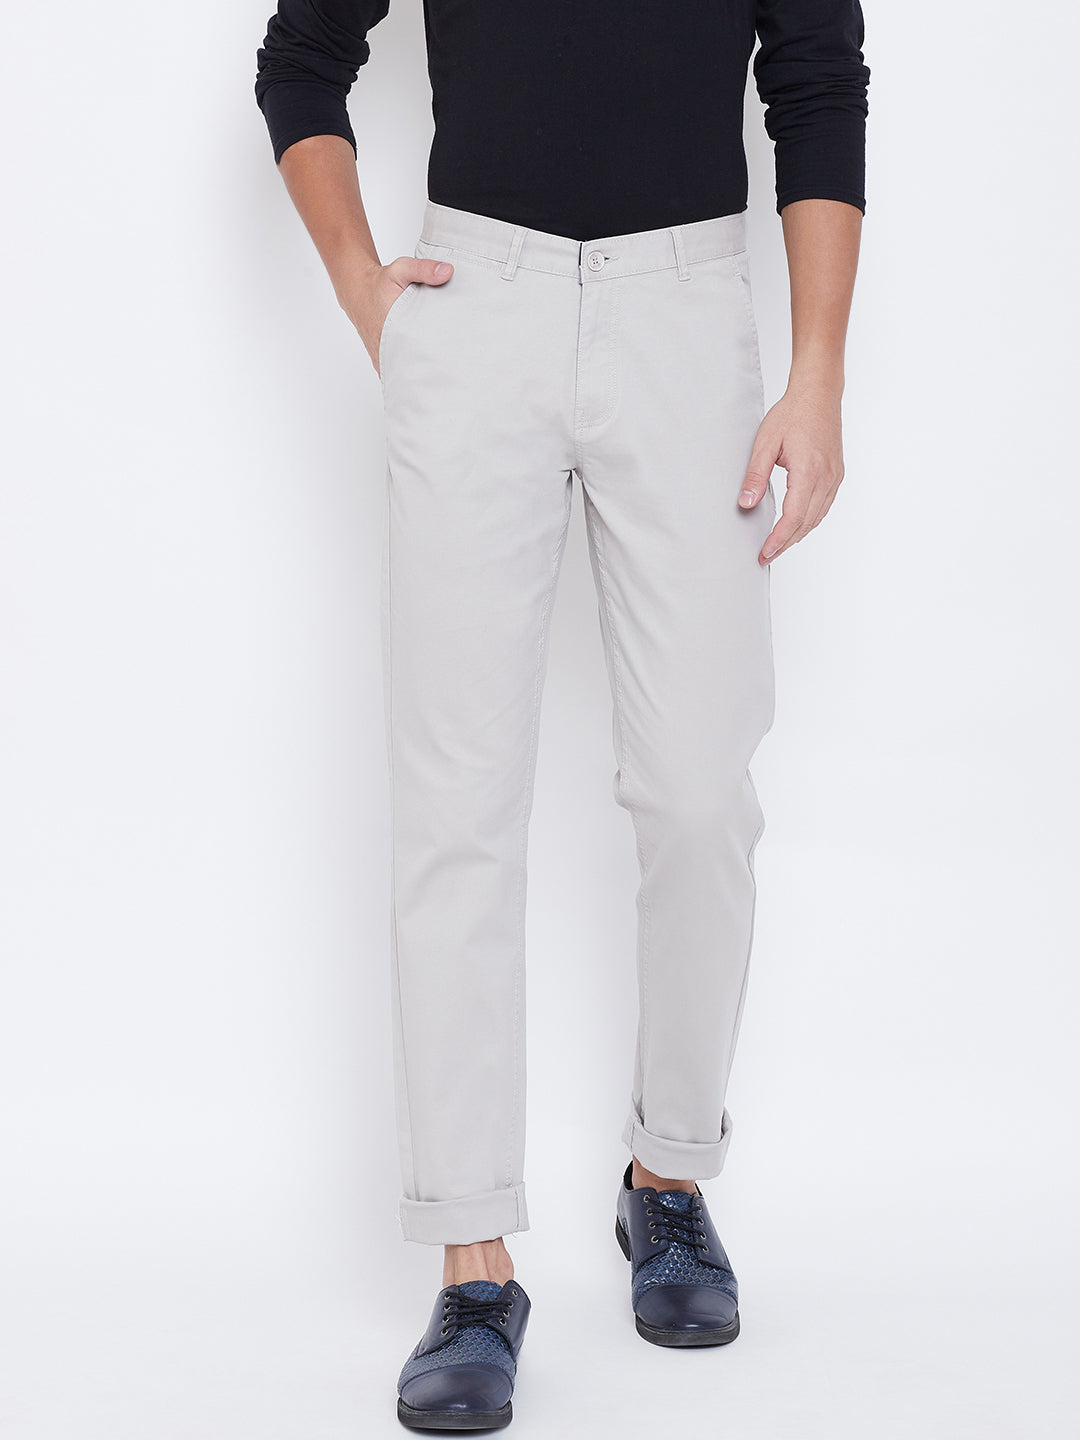 Octave Apparels Mastic Pant for Men